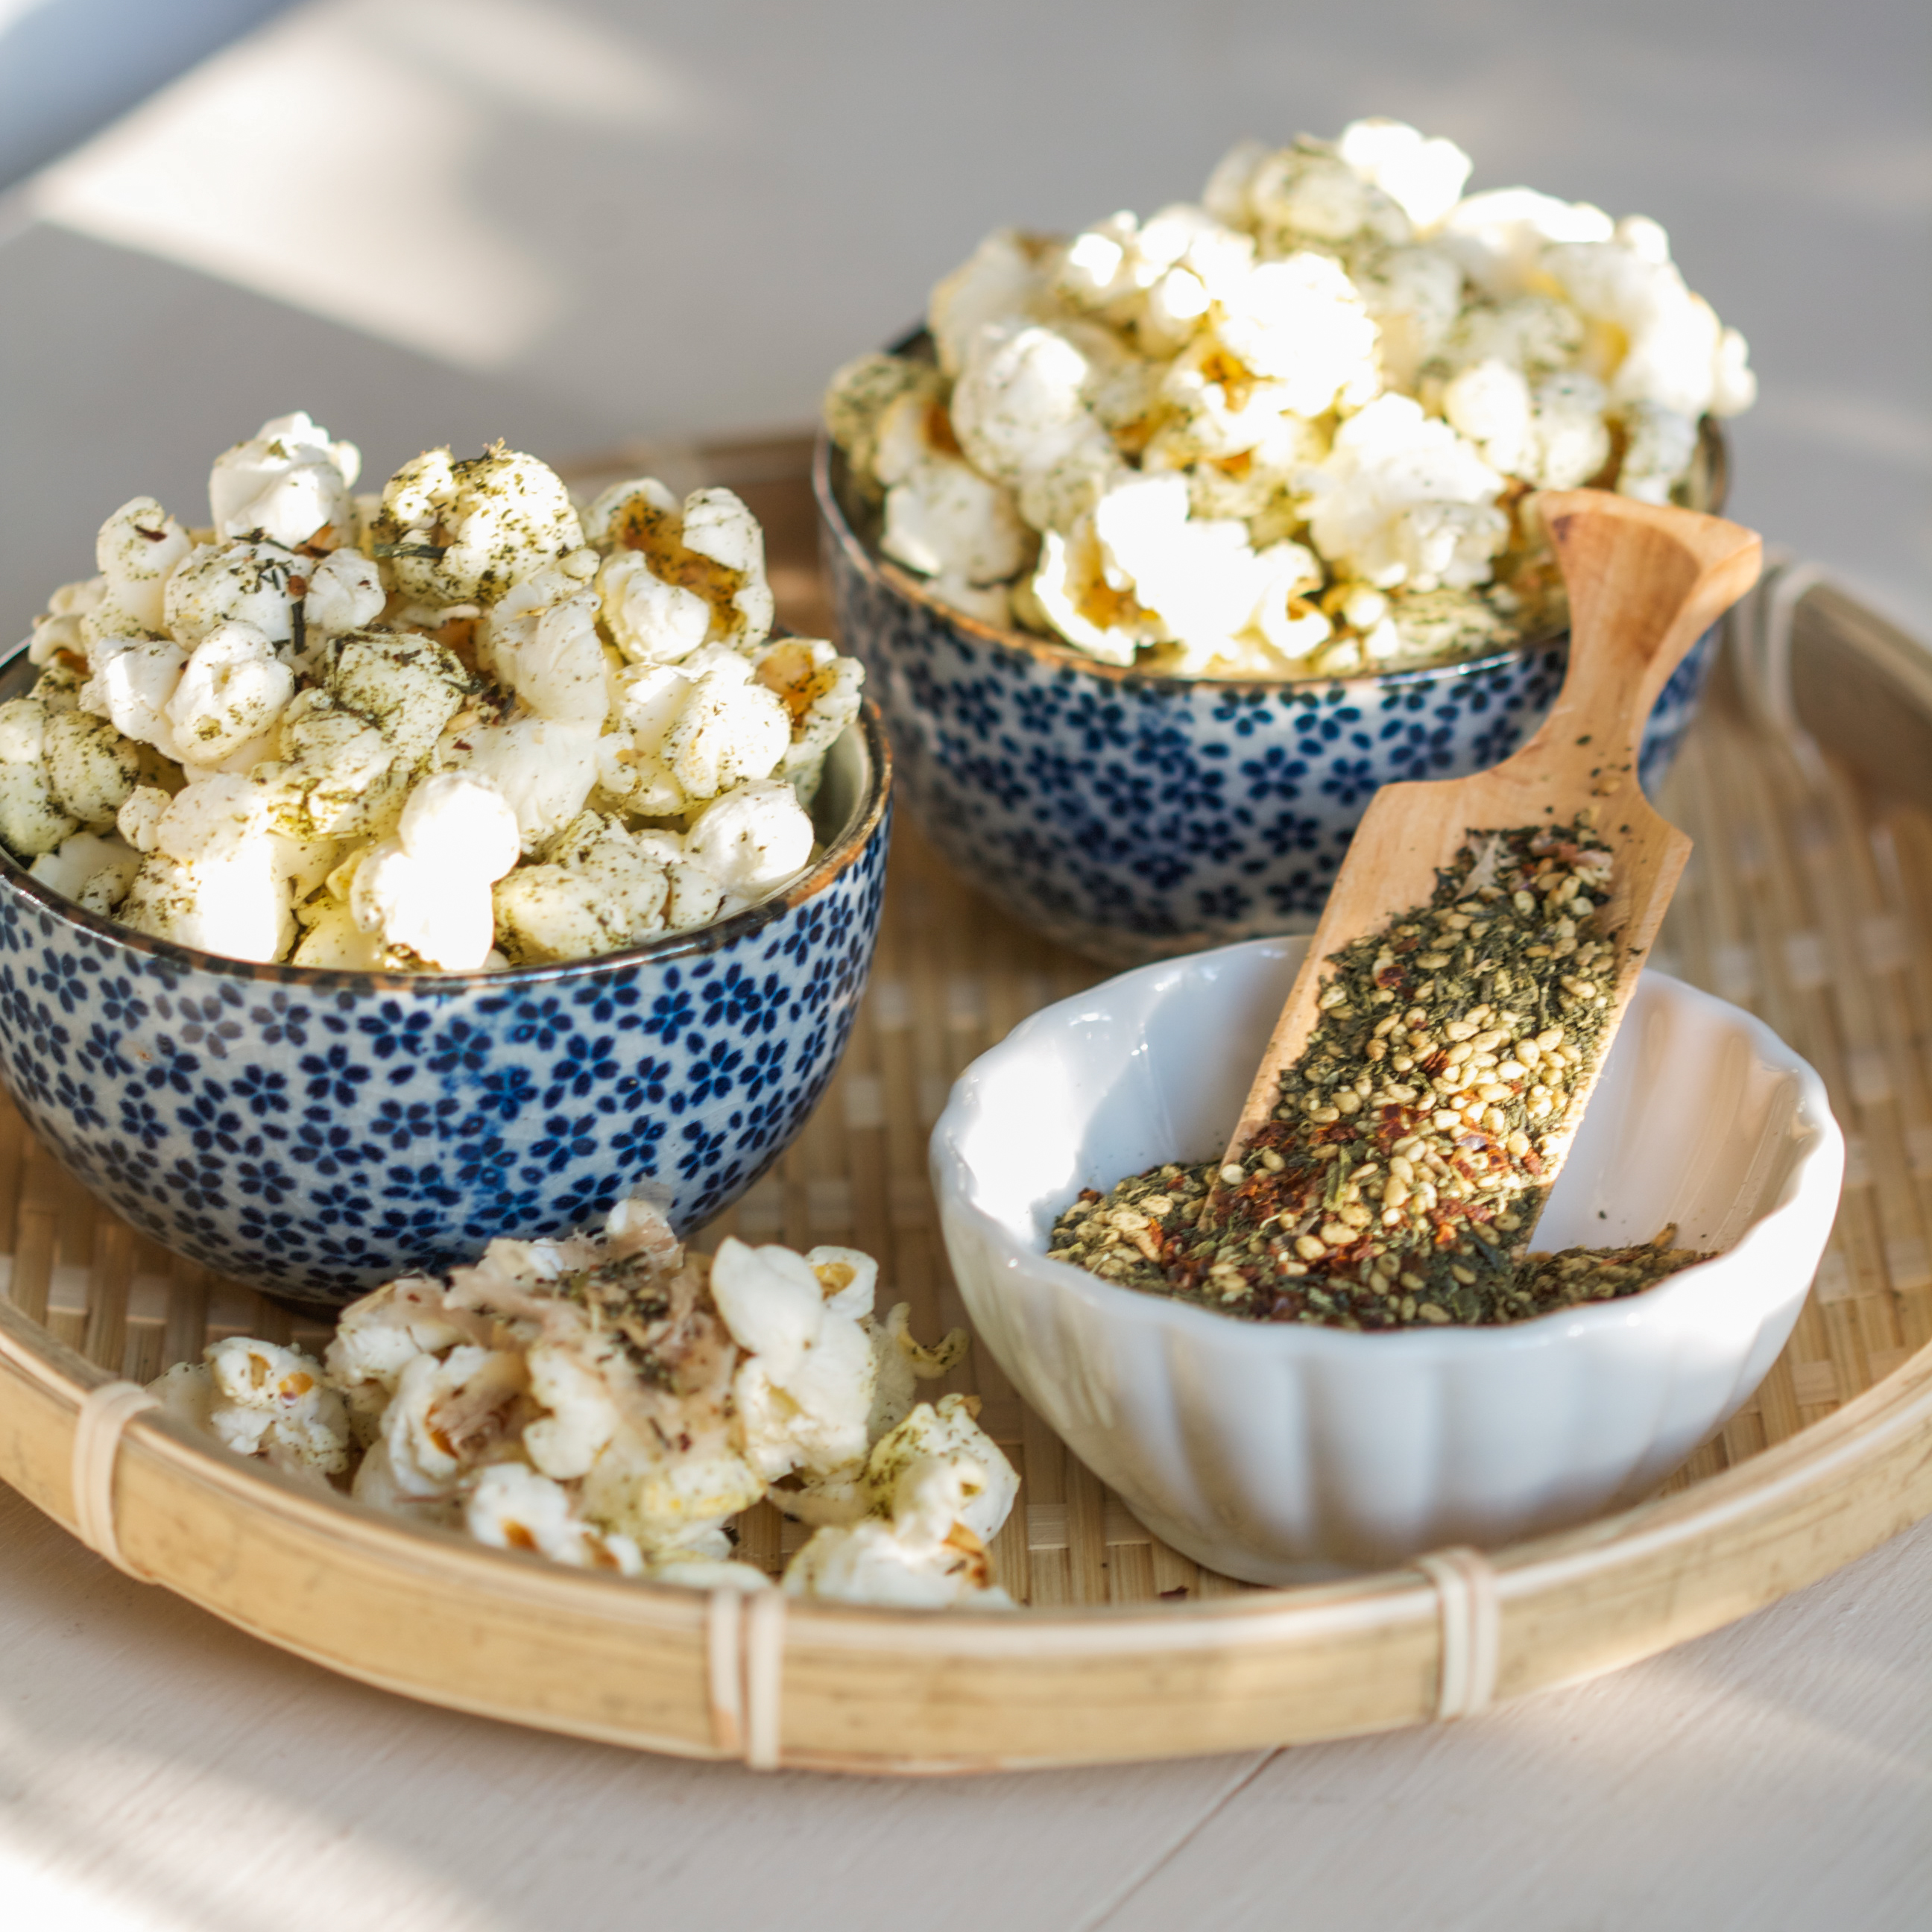 Thirsty For Tea Tea in My Popcorn, and Popcorn in My Tea